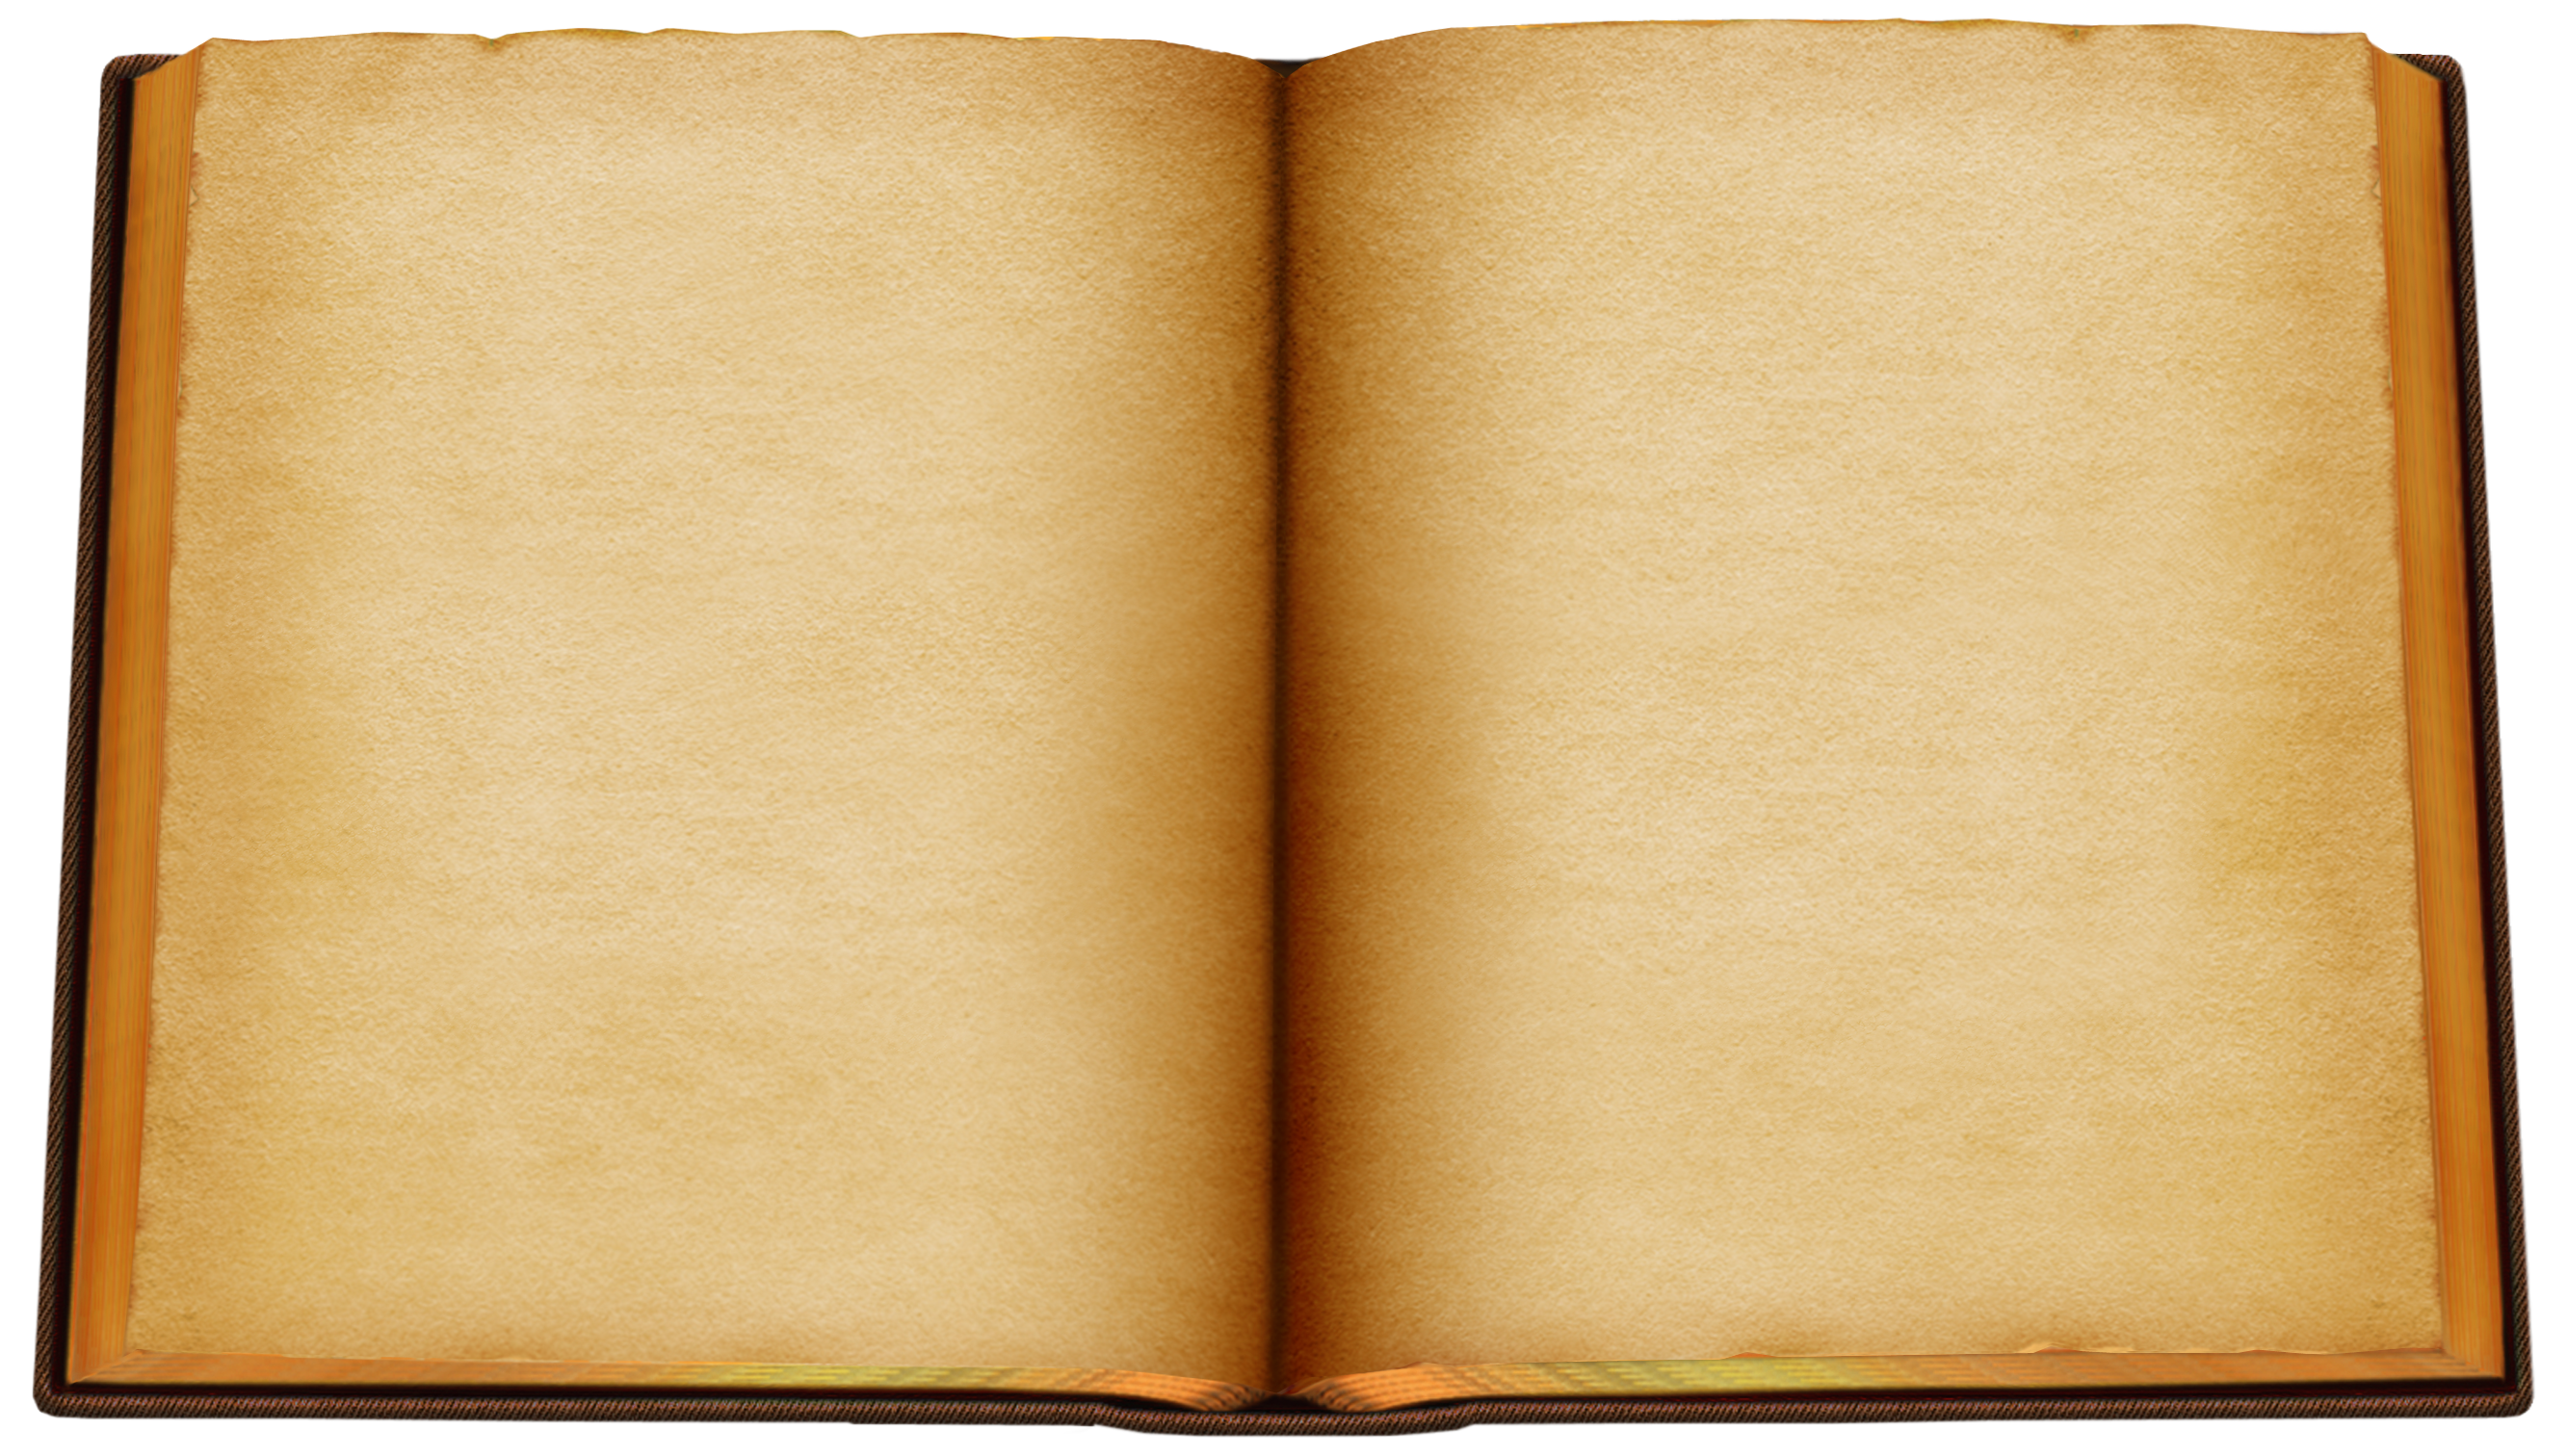 2665x1512 Old Open Book Png Clipart